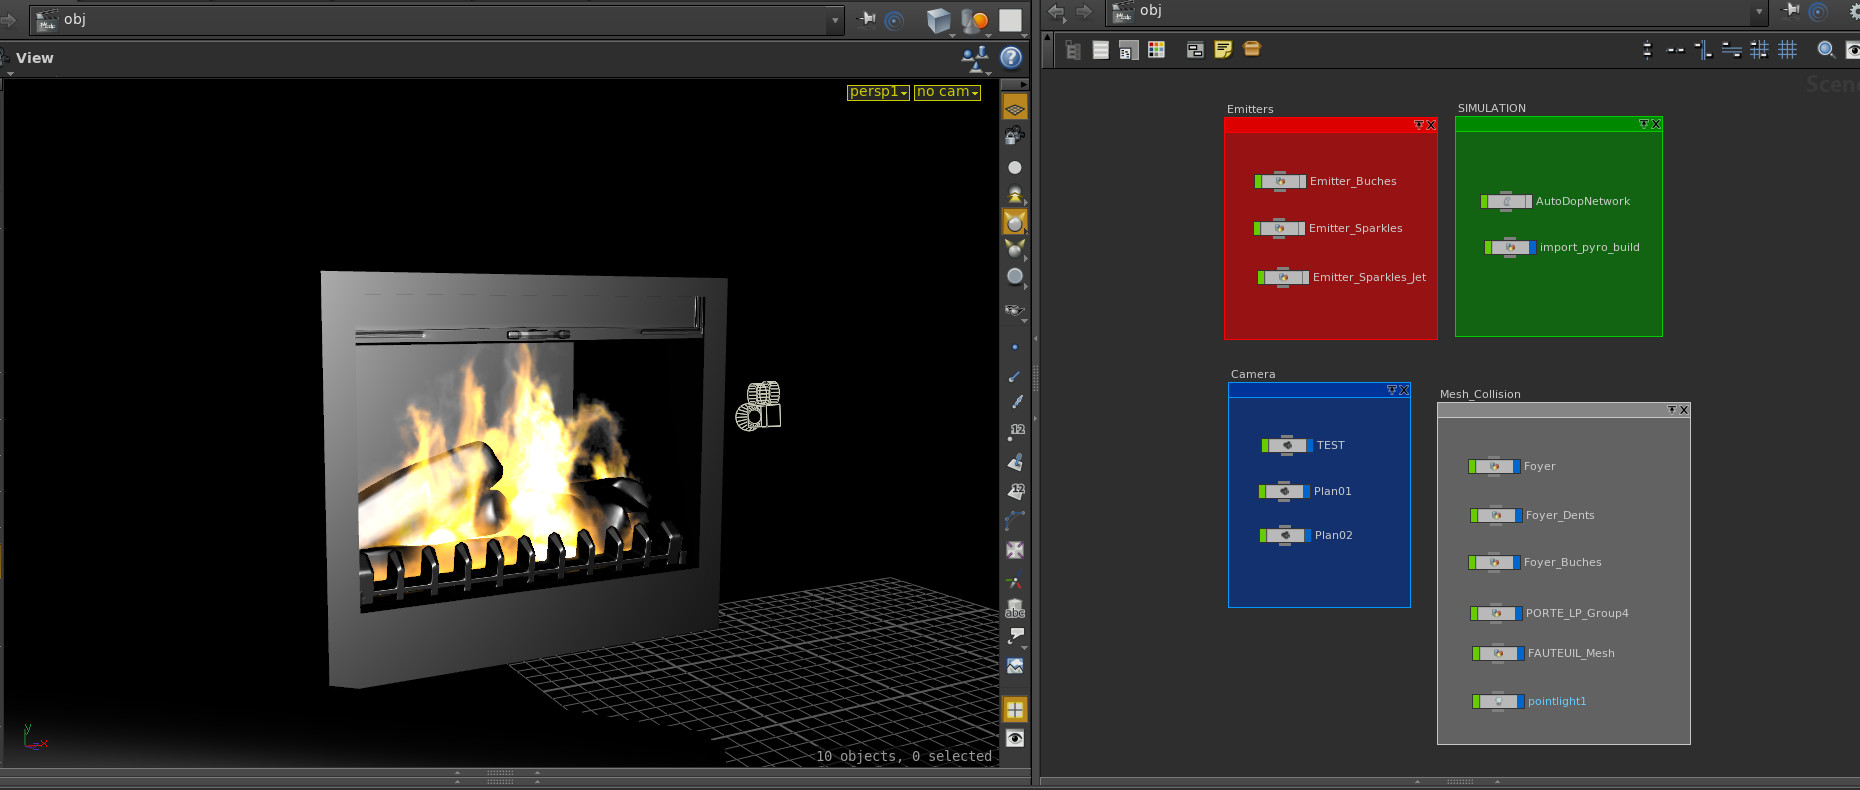 Gregory bove fireplacesimulation